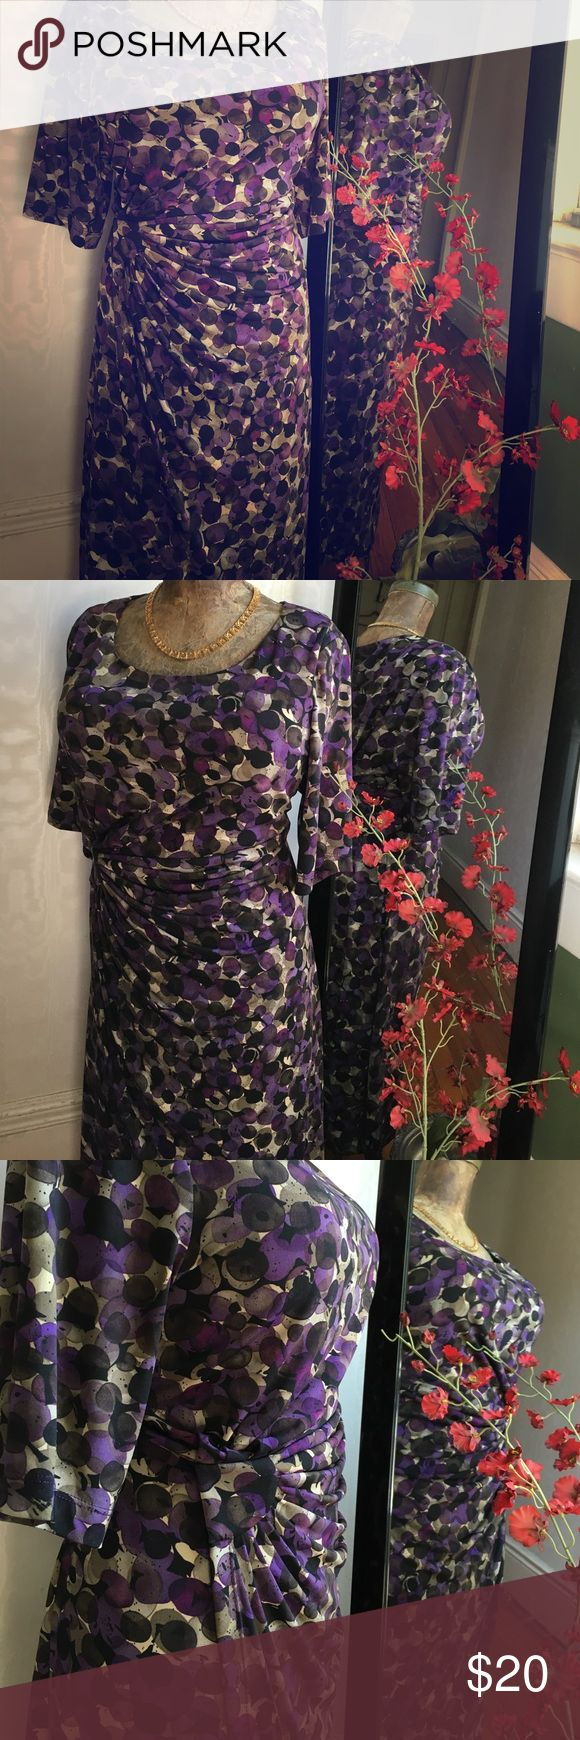 Gorgeous Dress for A Dinner Date or Wedding Size 14W. Worn once for my cousin's rehearsal dinner. Smoke-free, Pet-free Home. I'm open to offers but please be reasonable. I'm not here to get rich but I'm also not here just for fun. Let me know what I can do to take this out of my closet and on its way to yours. Connected Apparel Dresses